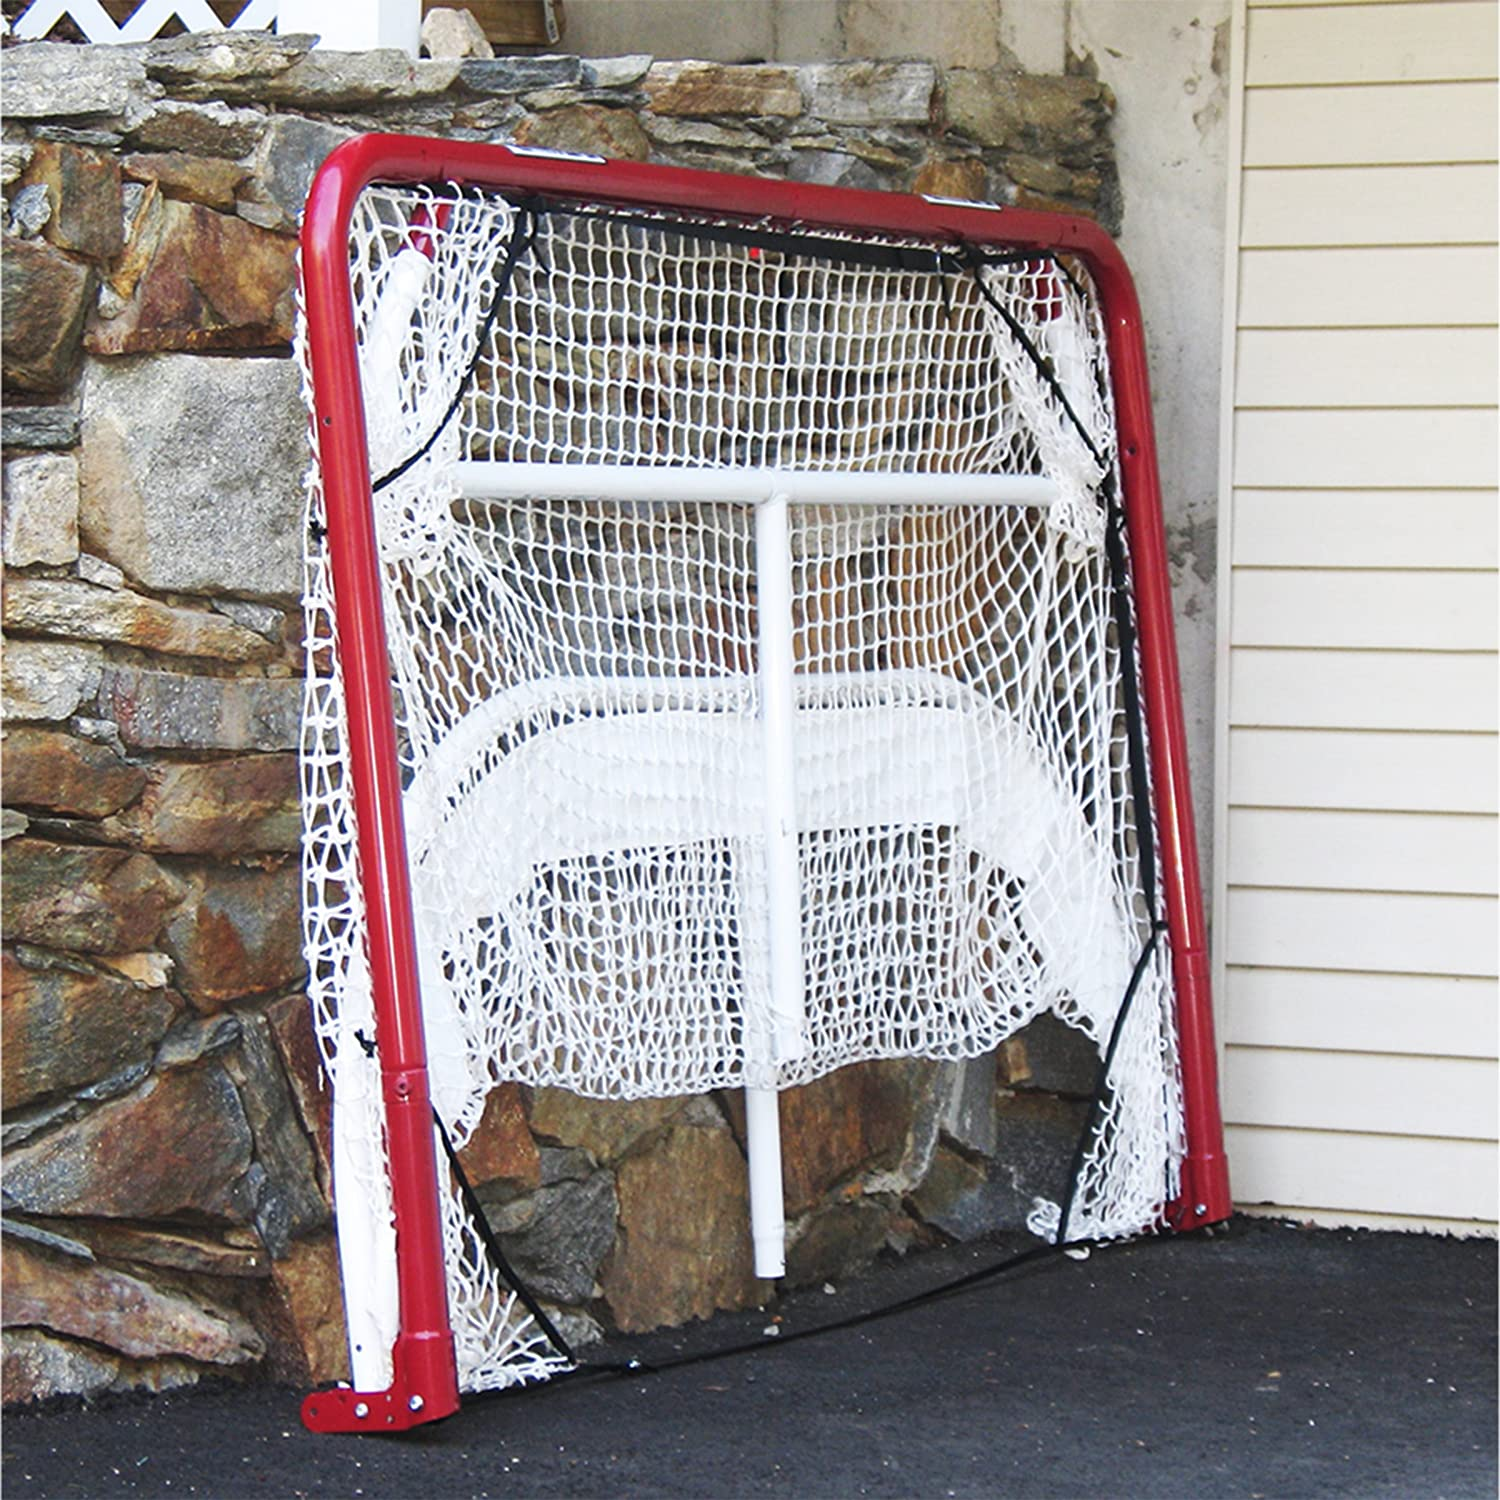 EZ Goal Hockey Backstop Kit with Targets, Red/White